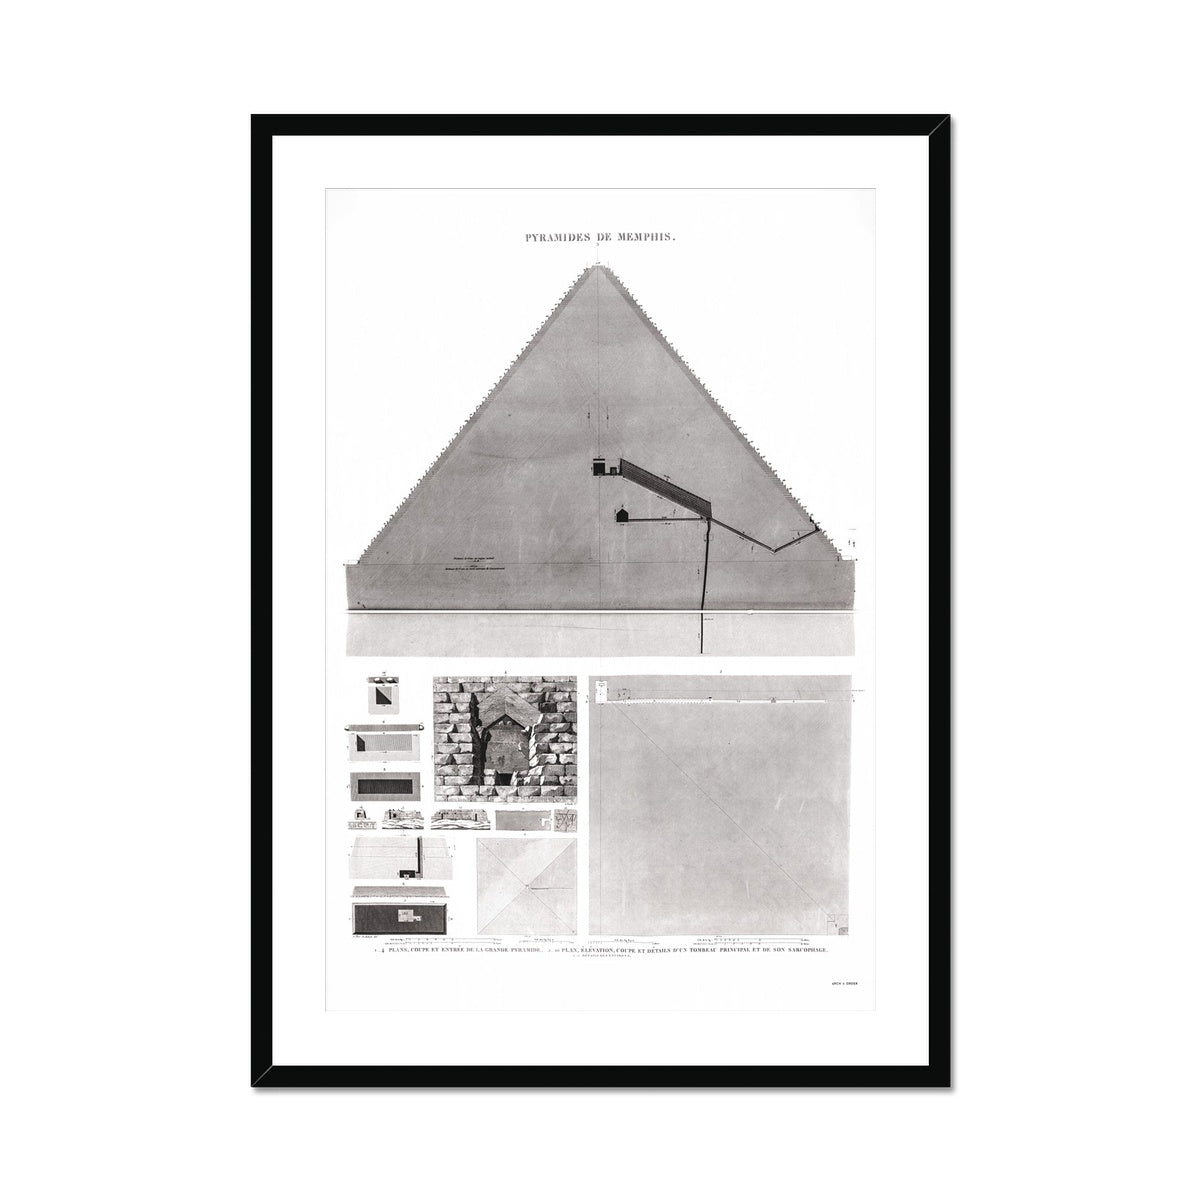 The Great Pyramid of Giza Cross Section - Memphis Egypt -  Framed & Mounted Print